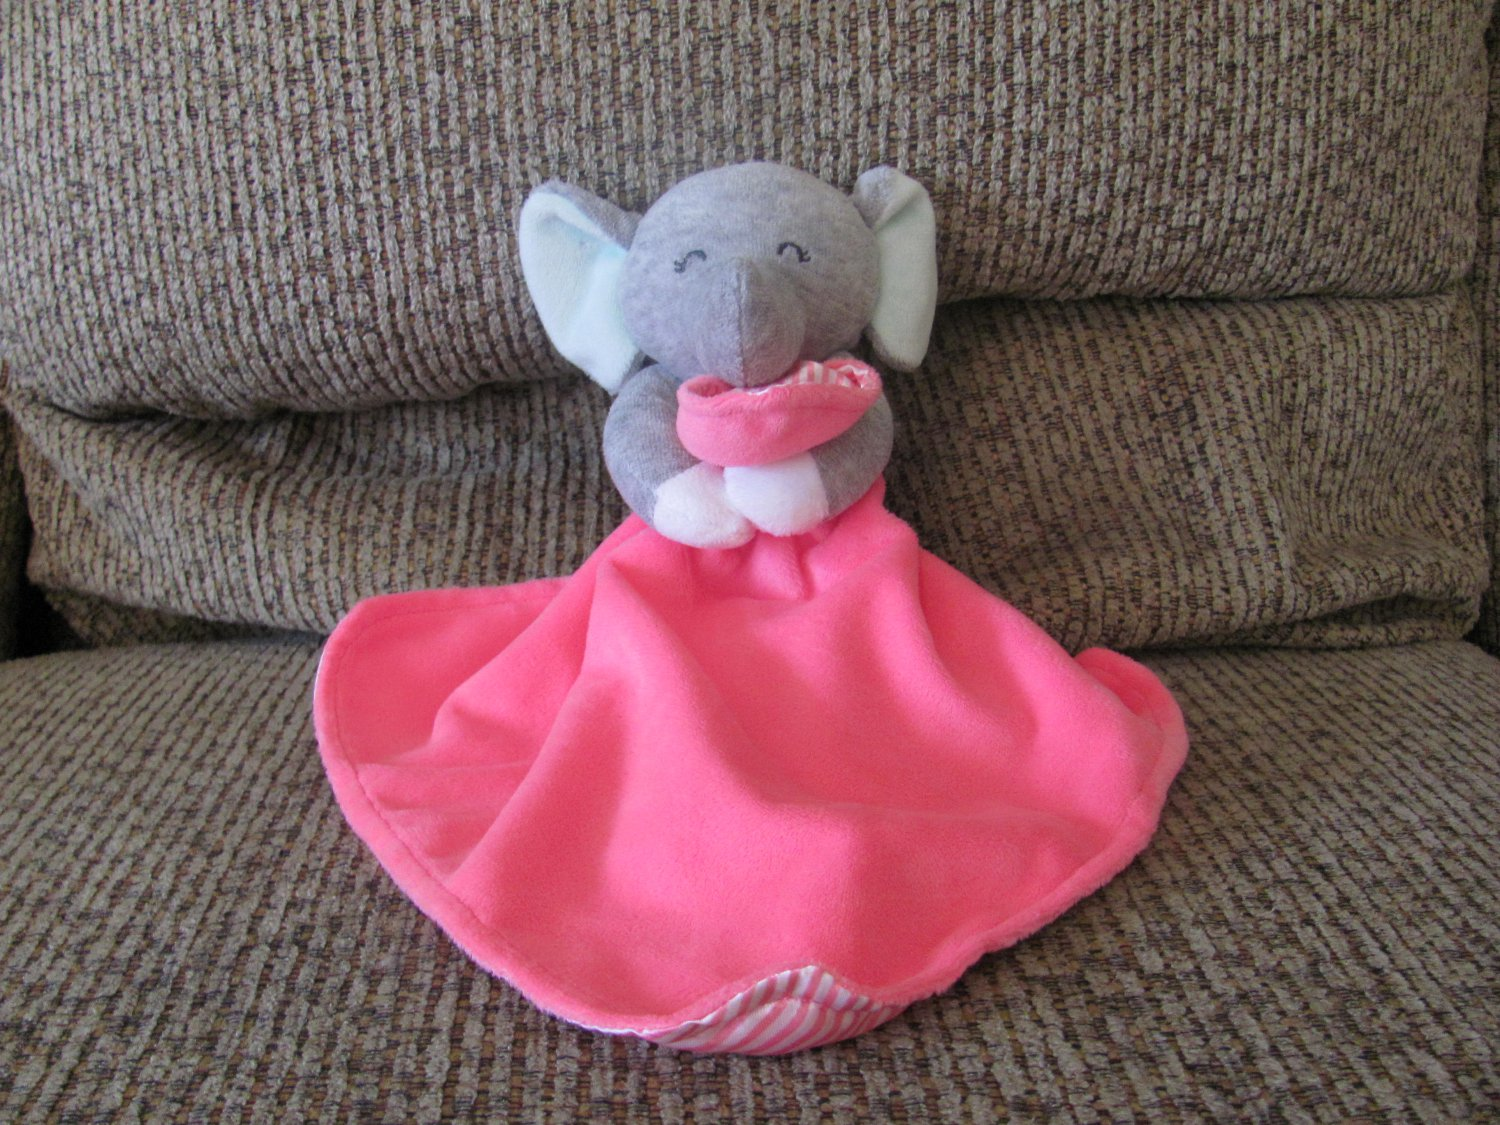 Carters One Size Cuddle Blanket Hot Pink Lovey Gray